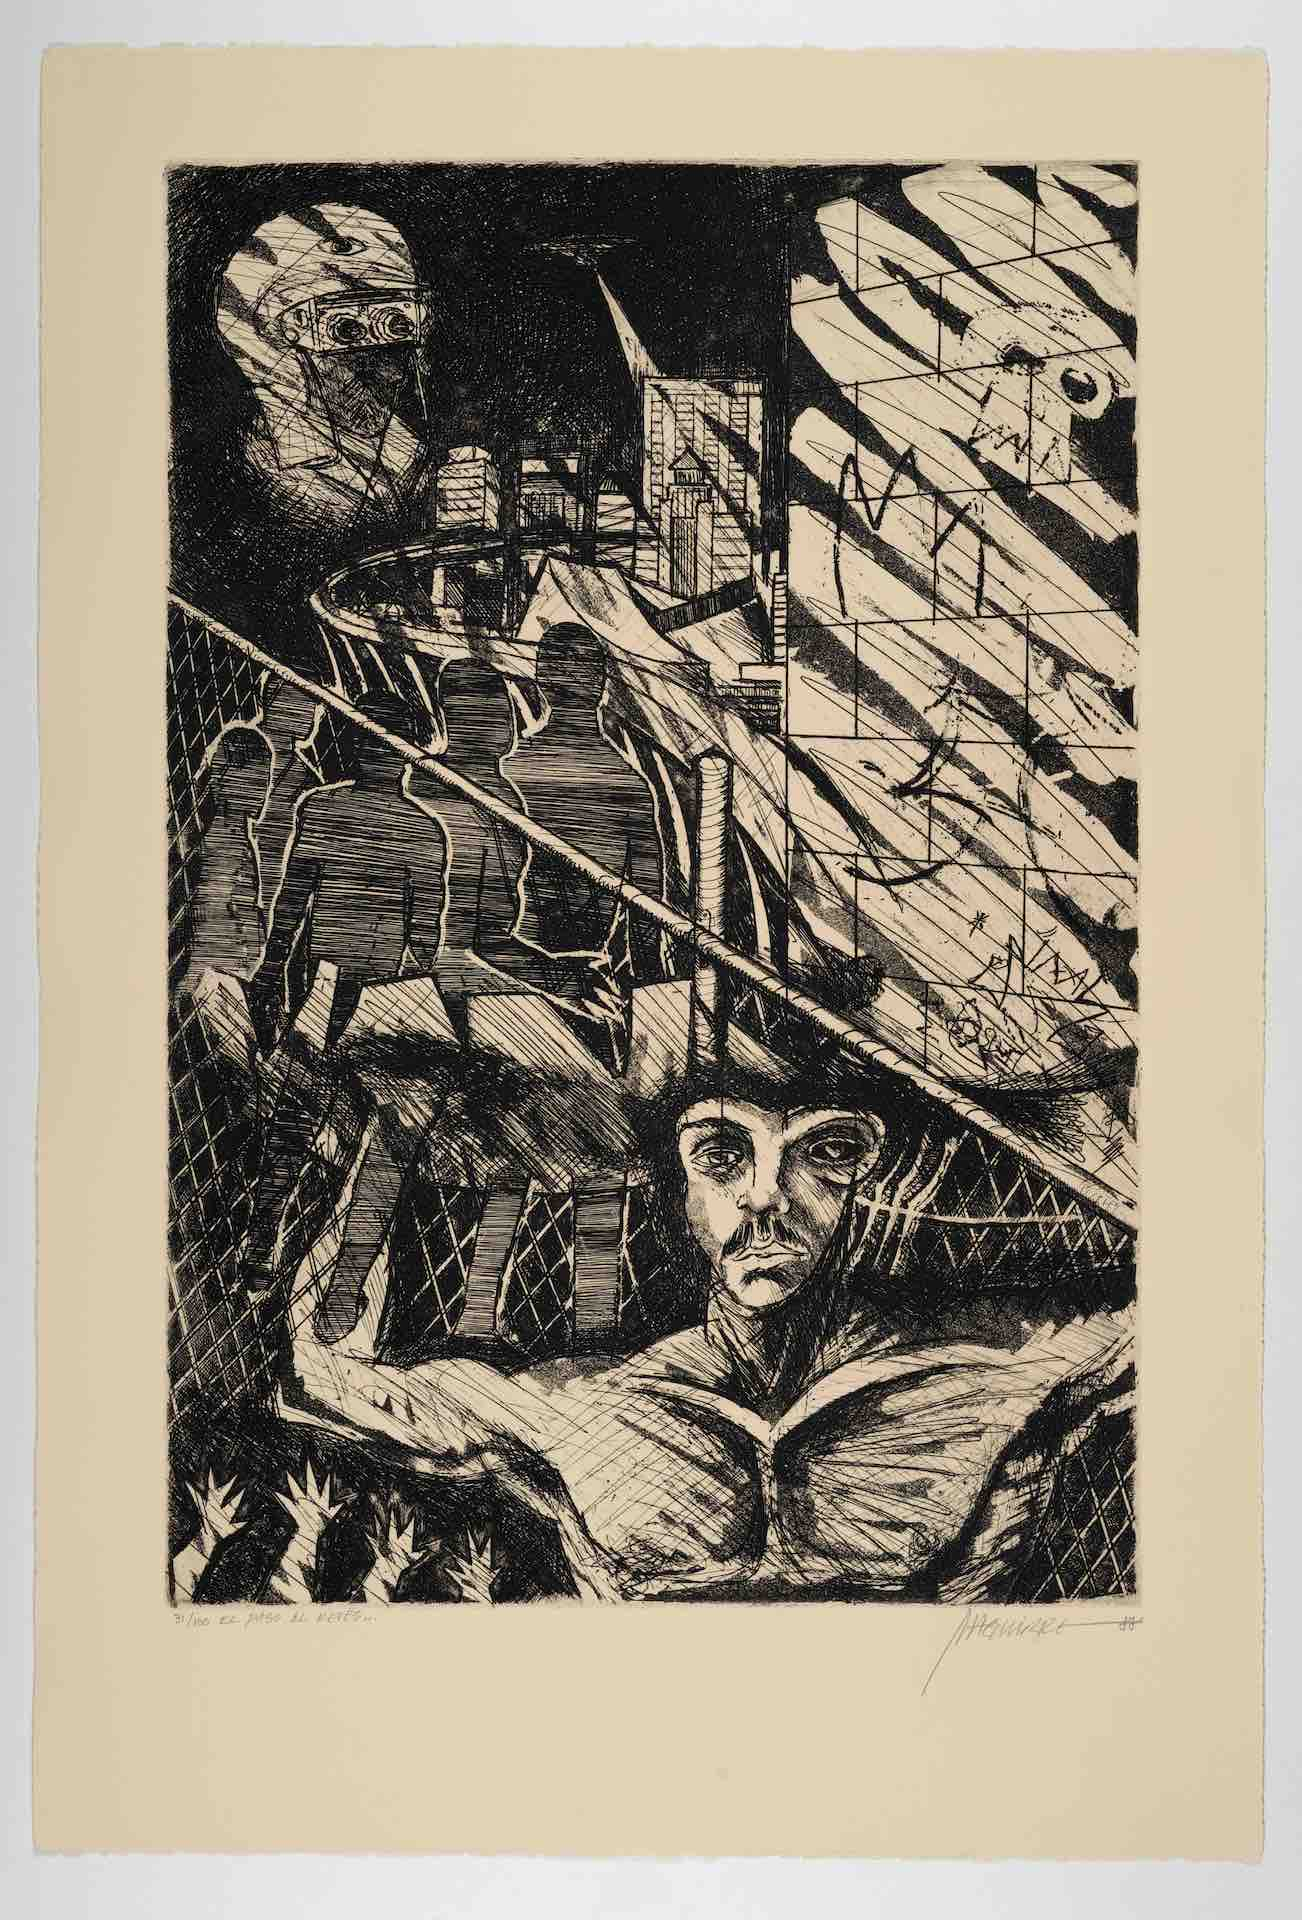 José Antonio Aguirre, El Paso, al revés [El Paso/The Step, Backwards], from The New Immigration series, 1988, etching with aquatint, 22 1/16 x 14 15/16 in. (56 x 38 cm), Blanton Museum of Art, The University of Texas at Austin, Gift of Gilberto Cardenas, 2017